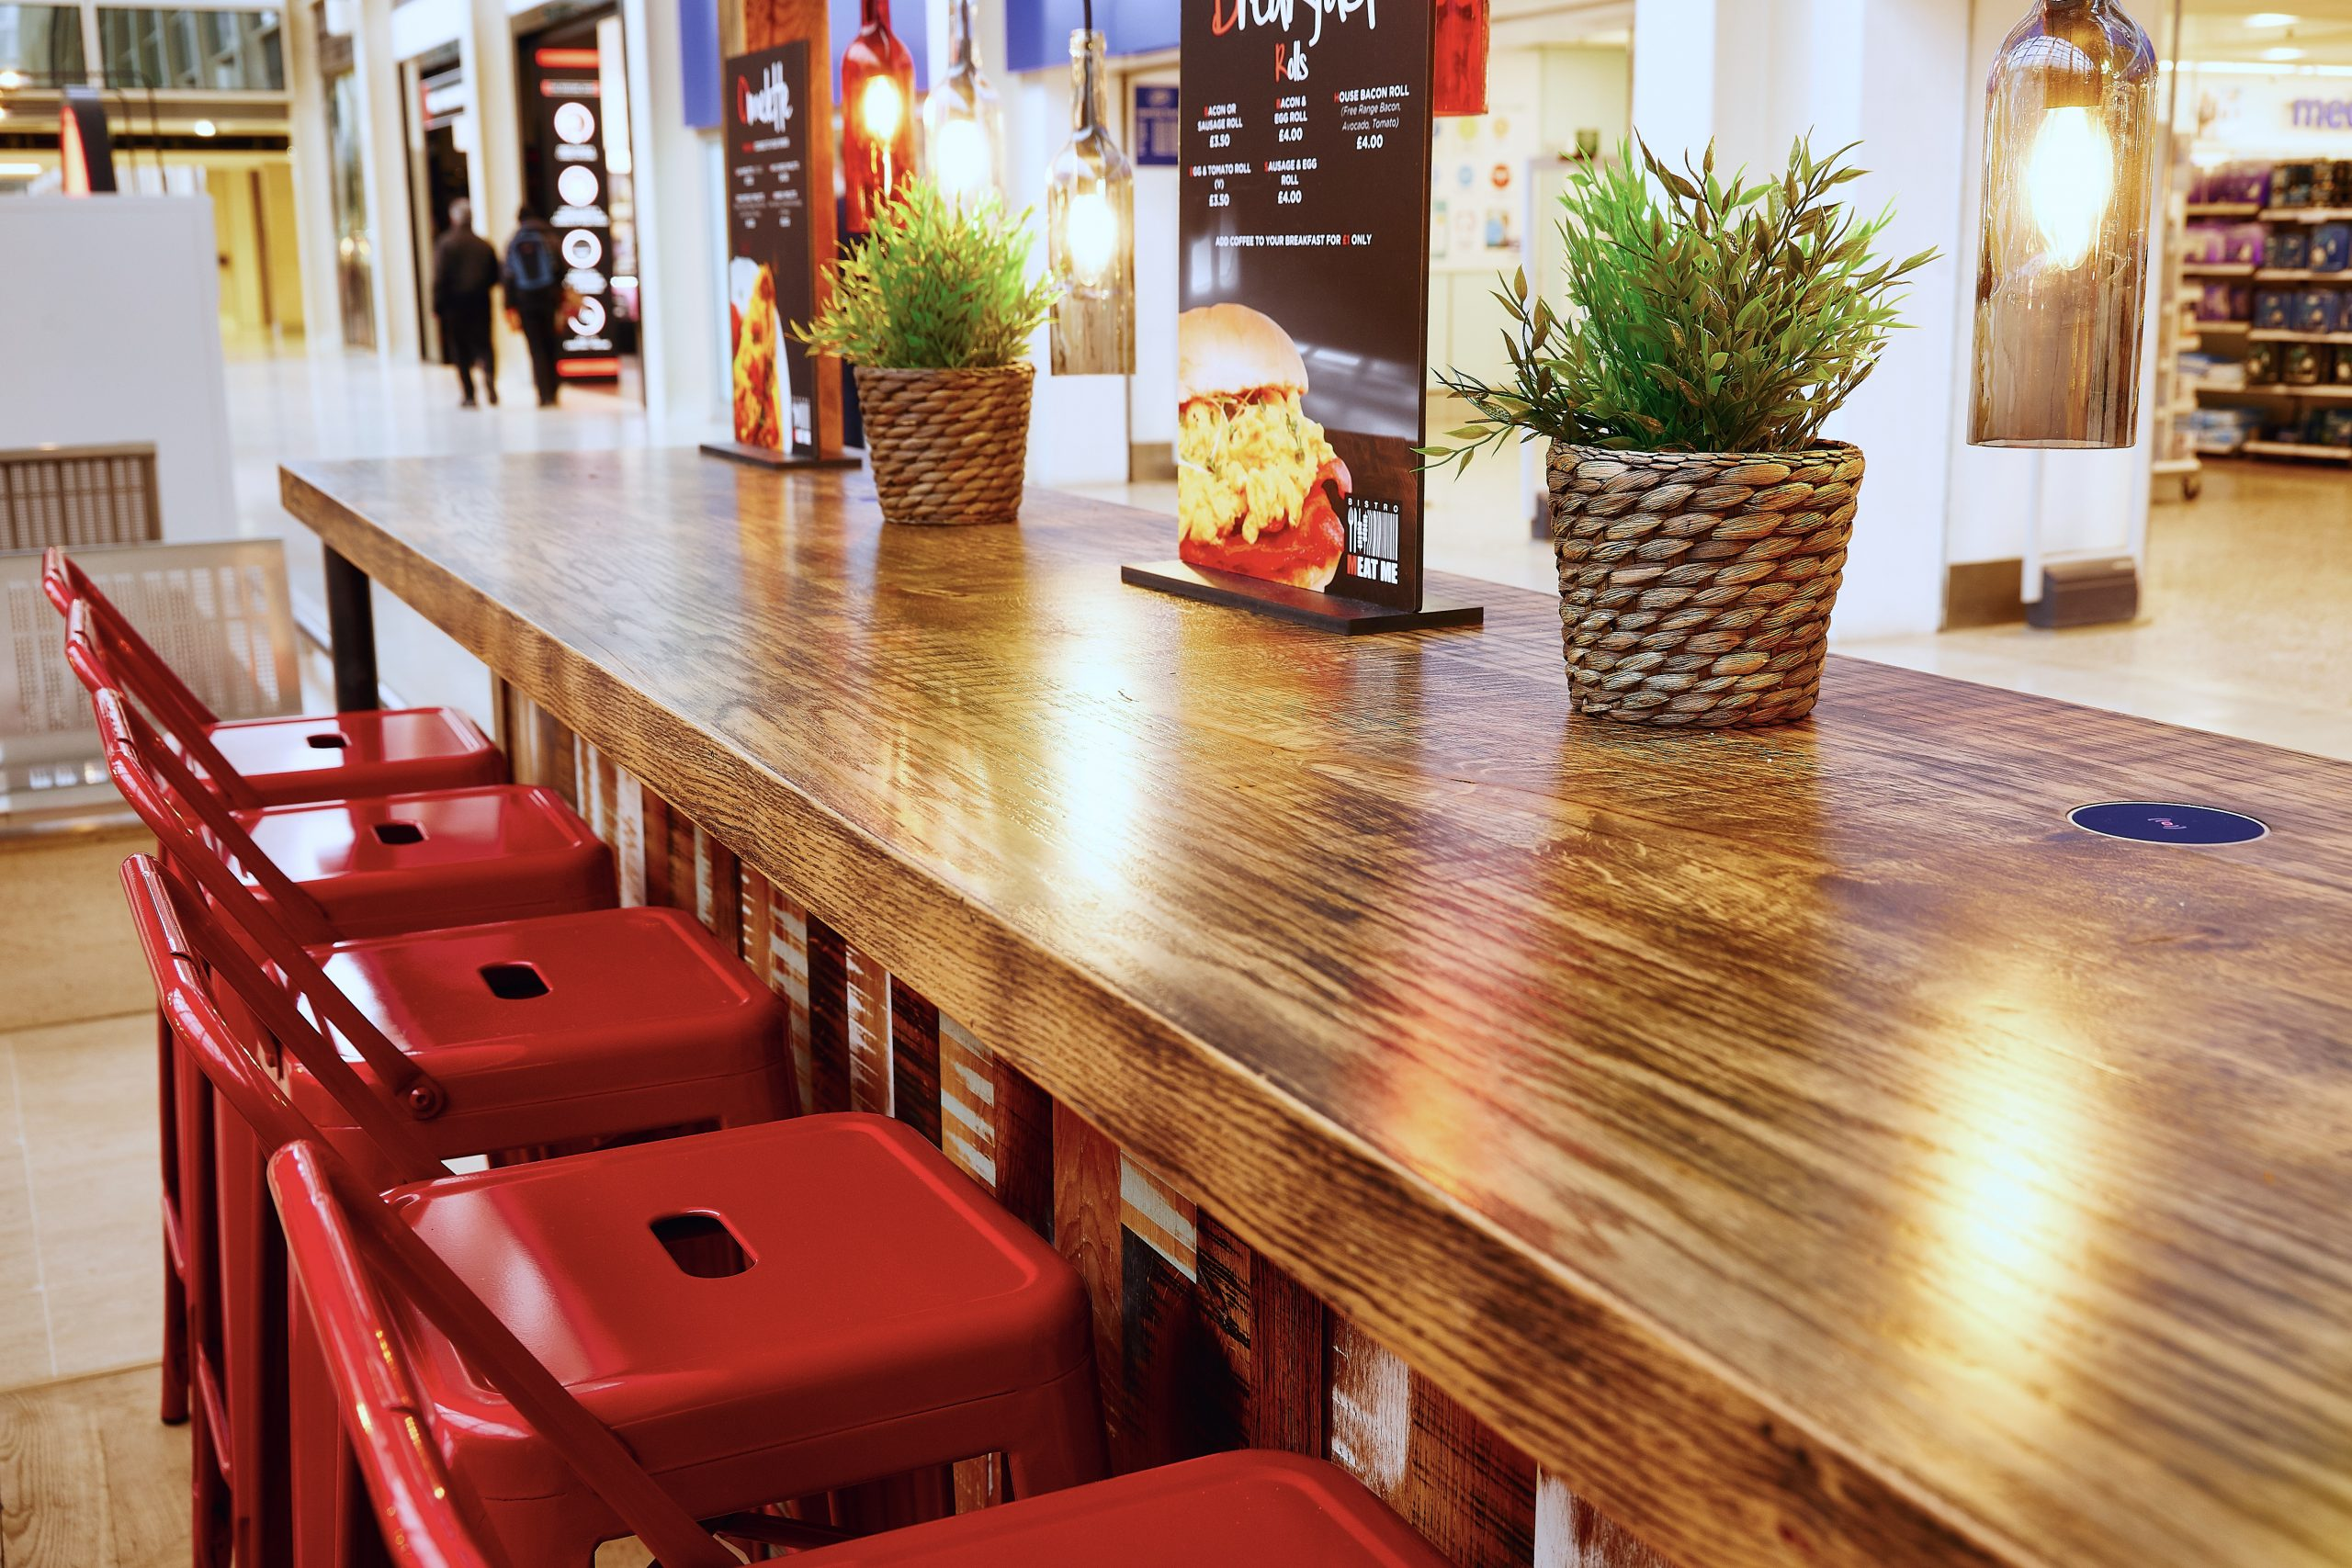 Rustic bar seating with red industrial stools